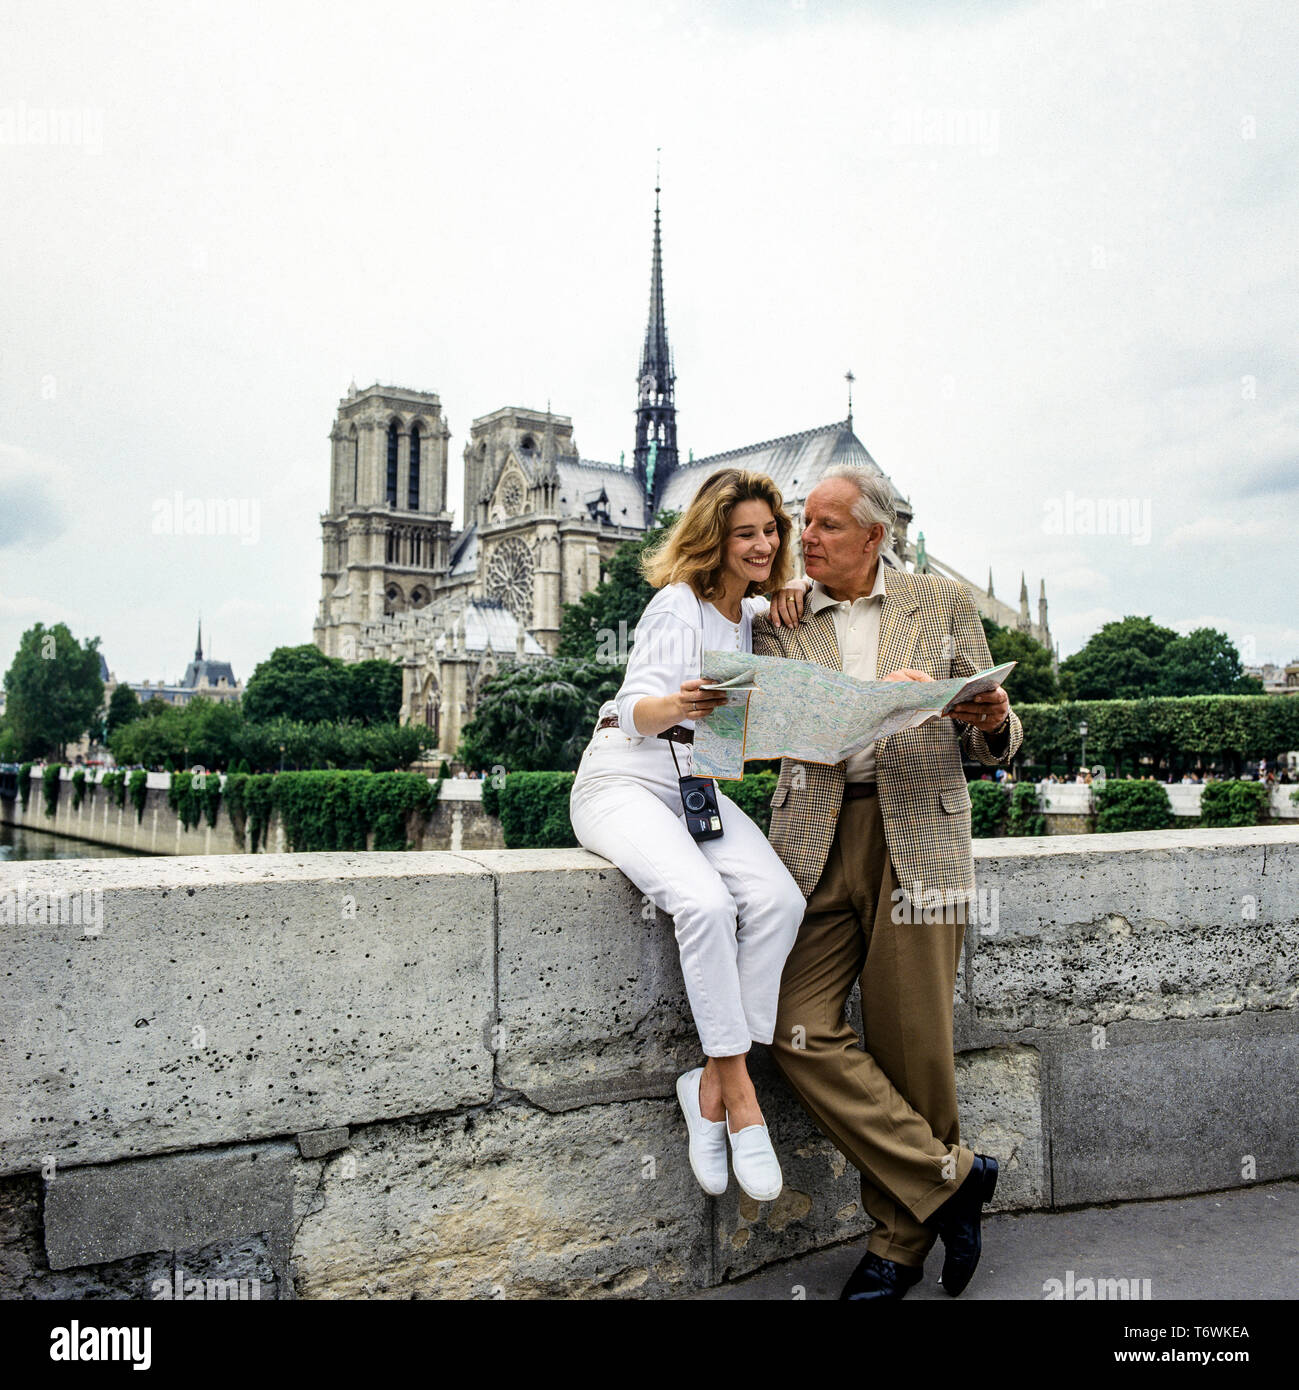 Couple of tourists in front of Notre-Dame cathedral, Paris, France, Europe - Stock Image